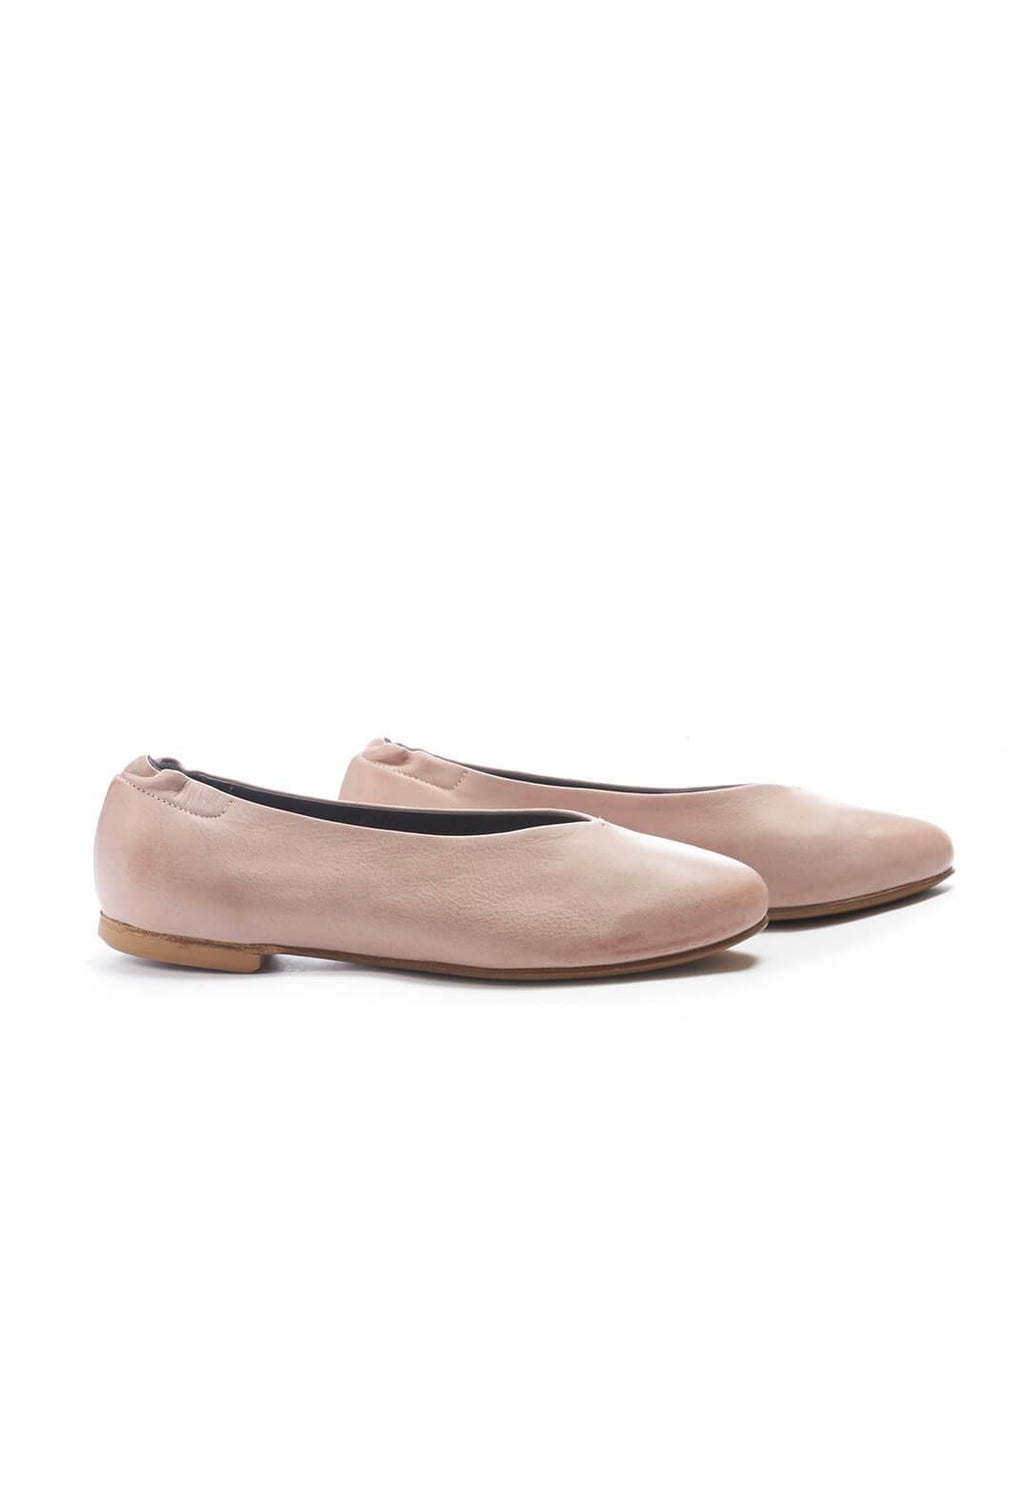 Ballerina Shoes in Gasoline fard